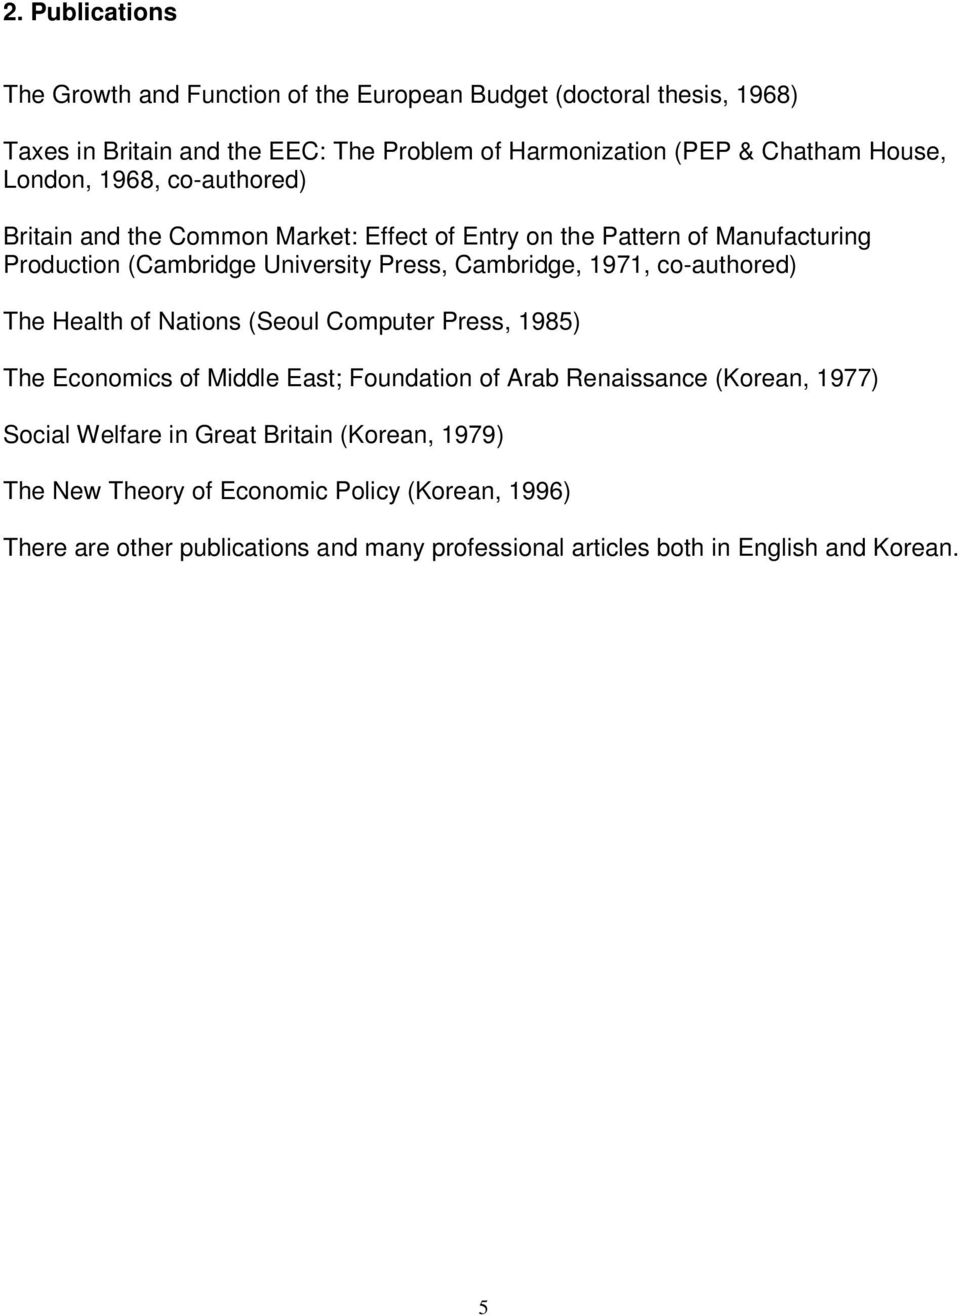 1971, co-authored) The Health of Nations (Seoul Computer Press, 1985) The Economics of Middle East; Foundation of Arab Renaissance (Korean, 1977) Social Welfare in